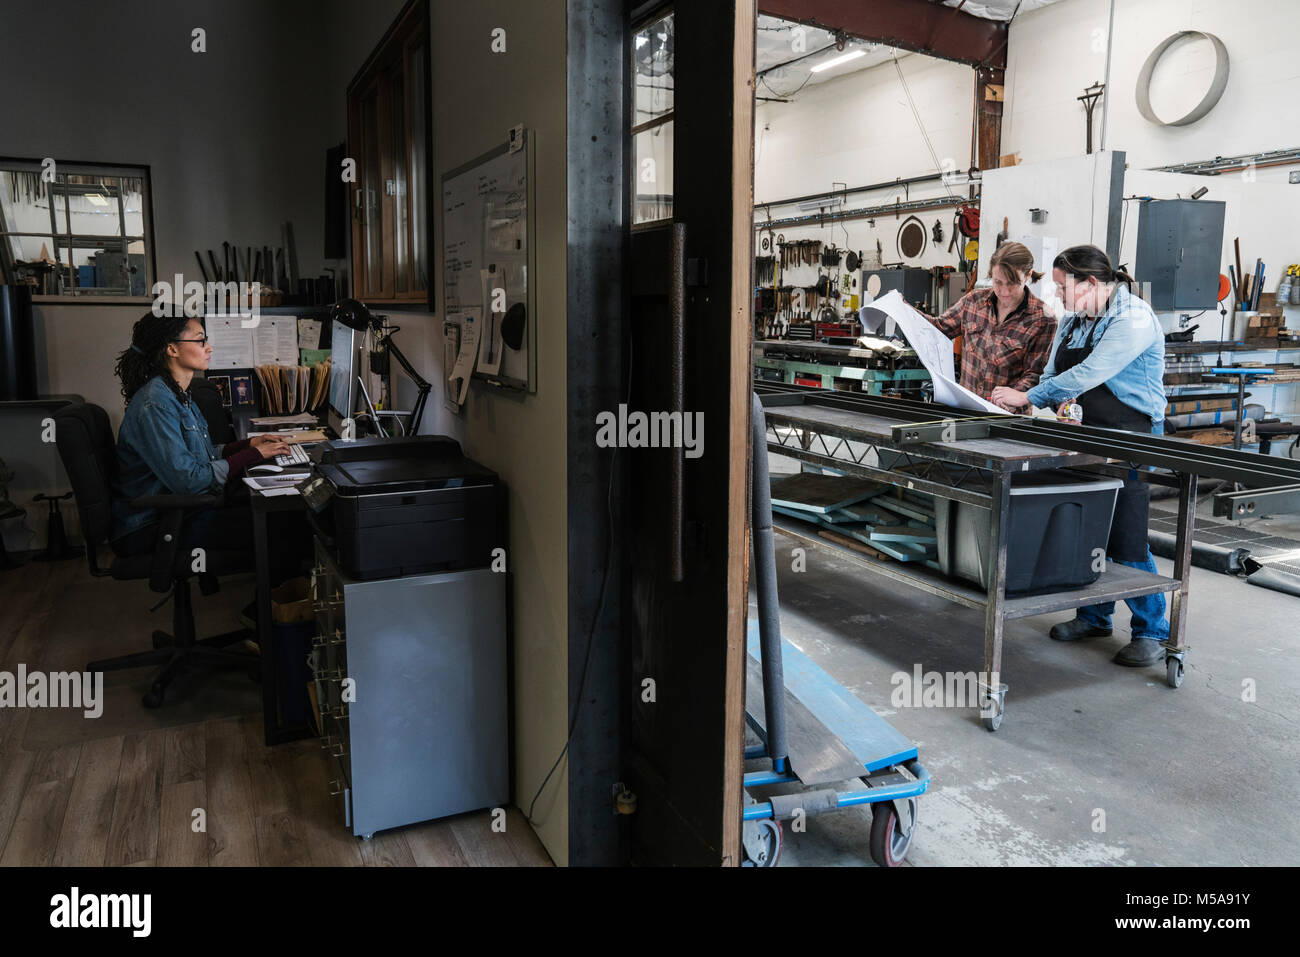 Two women at a desk in office area of a metal workshop, woman standing at mobile workbench. - Stock Image